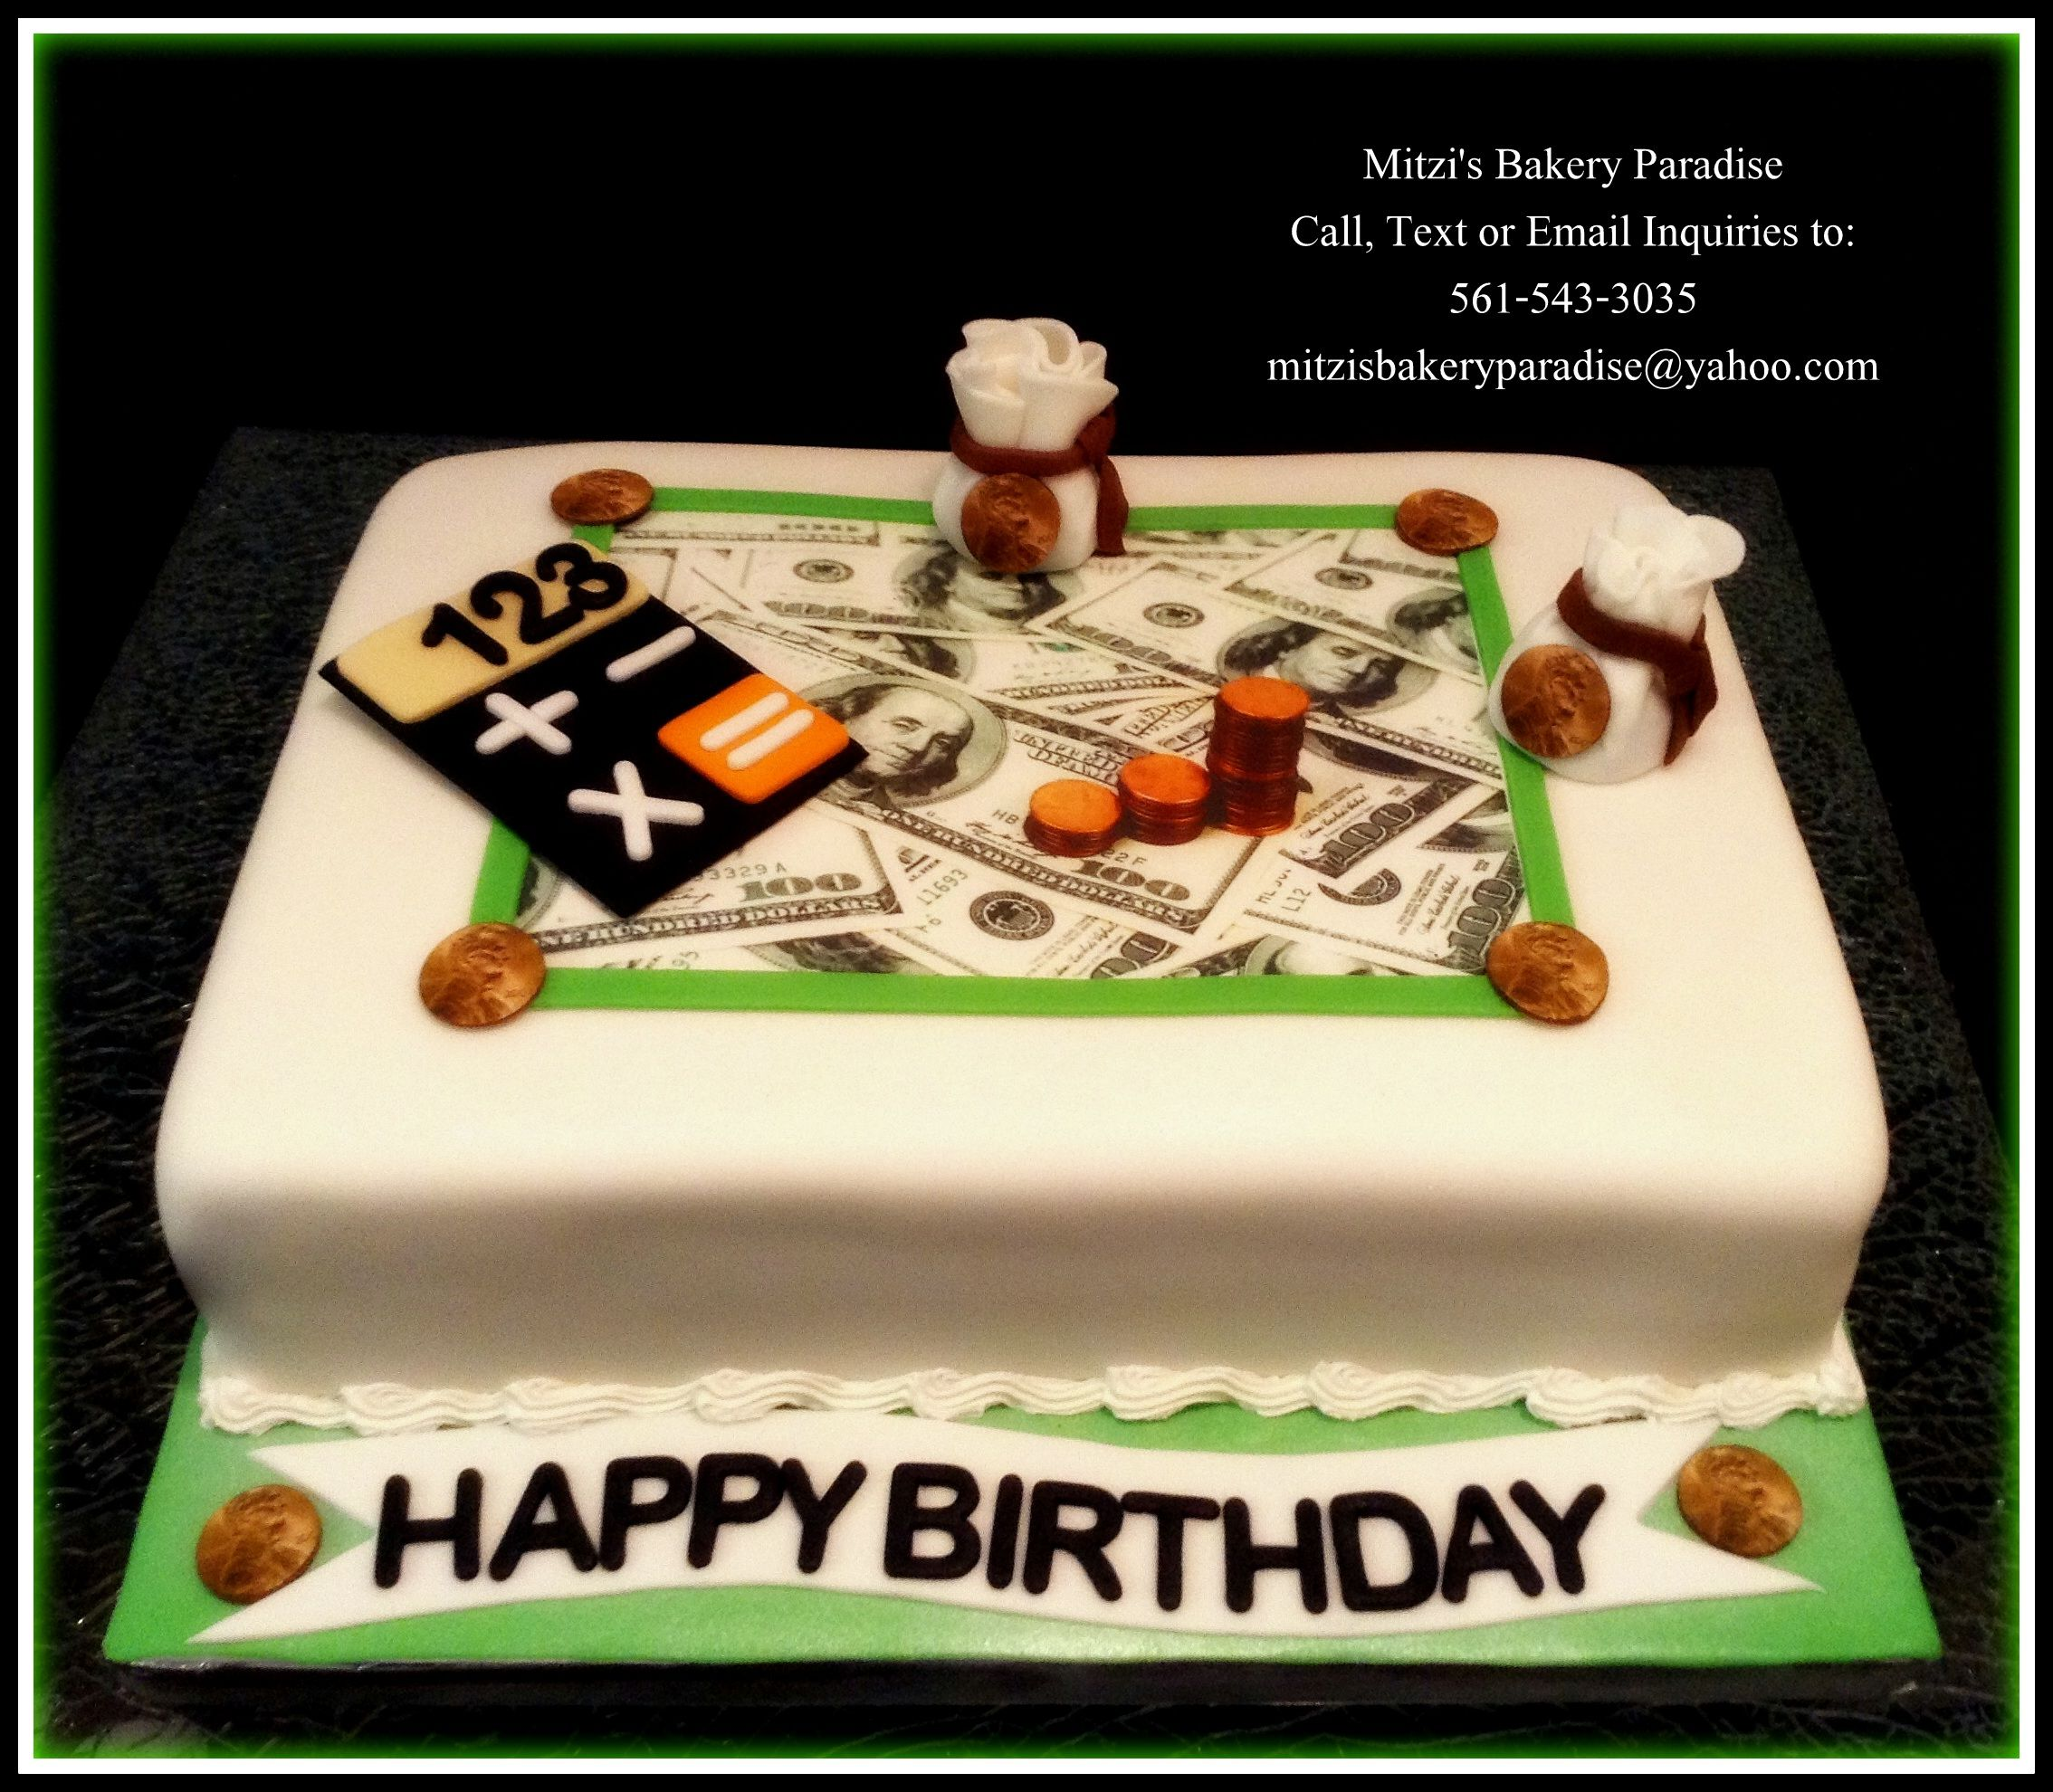 The theme of this cake is Money/Finance/Accounting ...